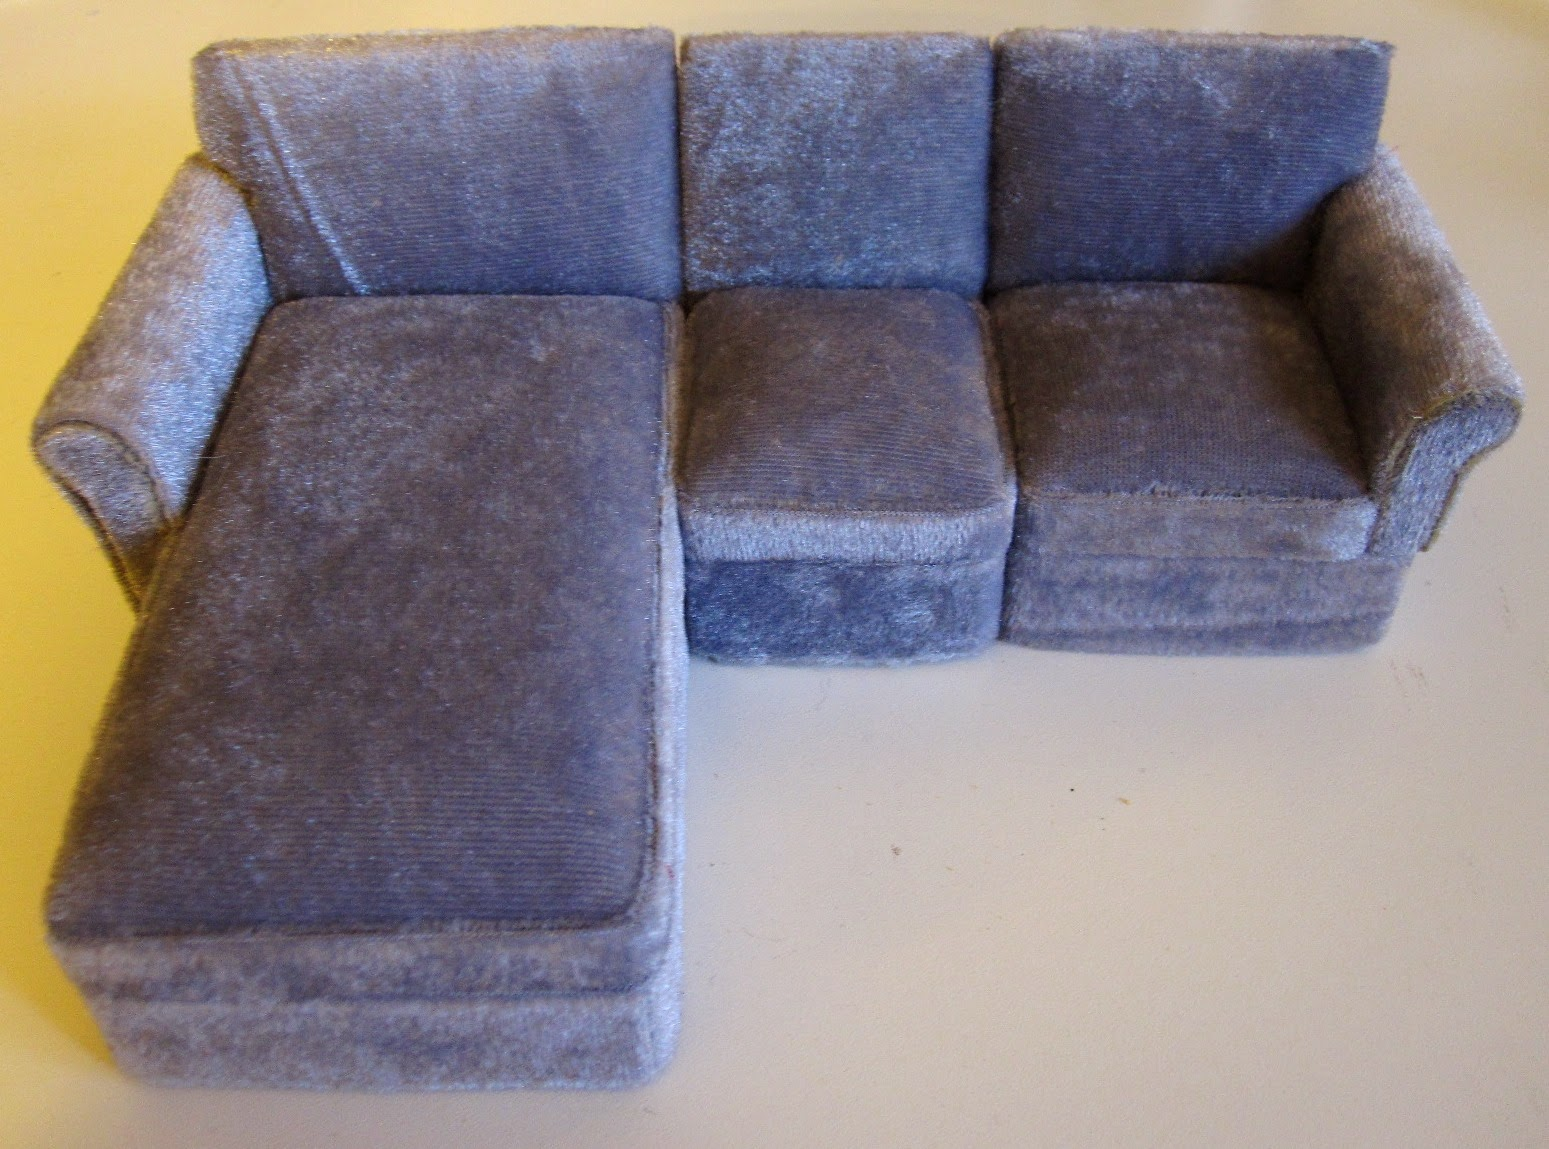 Modern dolls house miniature three piece grey velvet sectional sofa with chaise